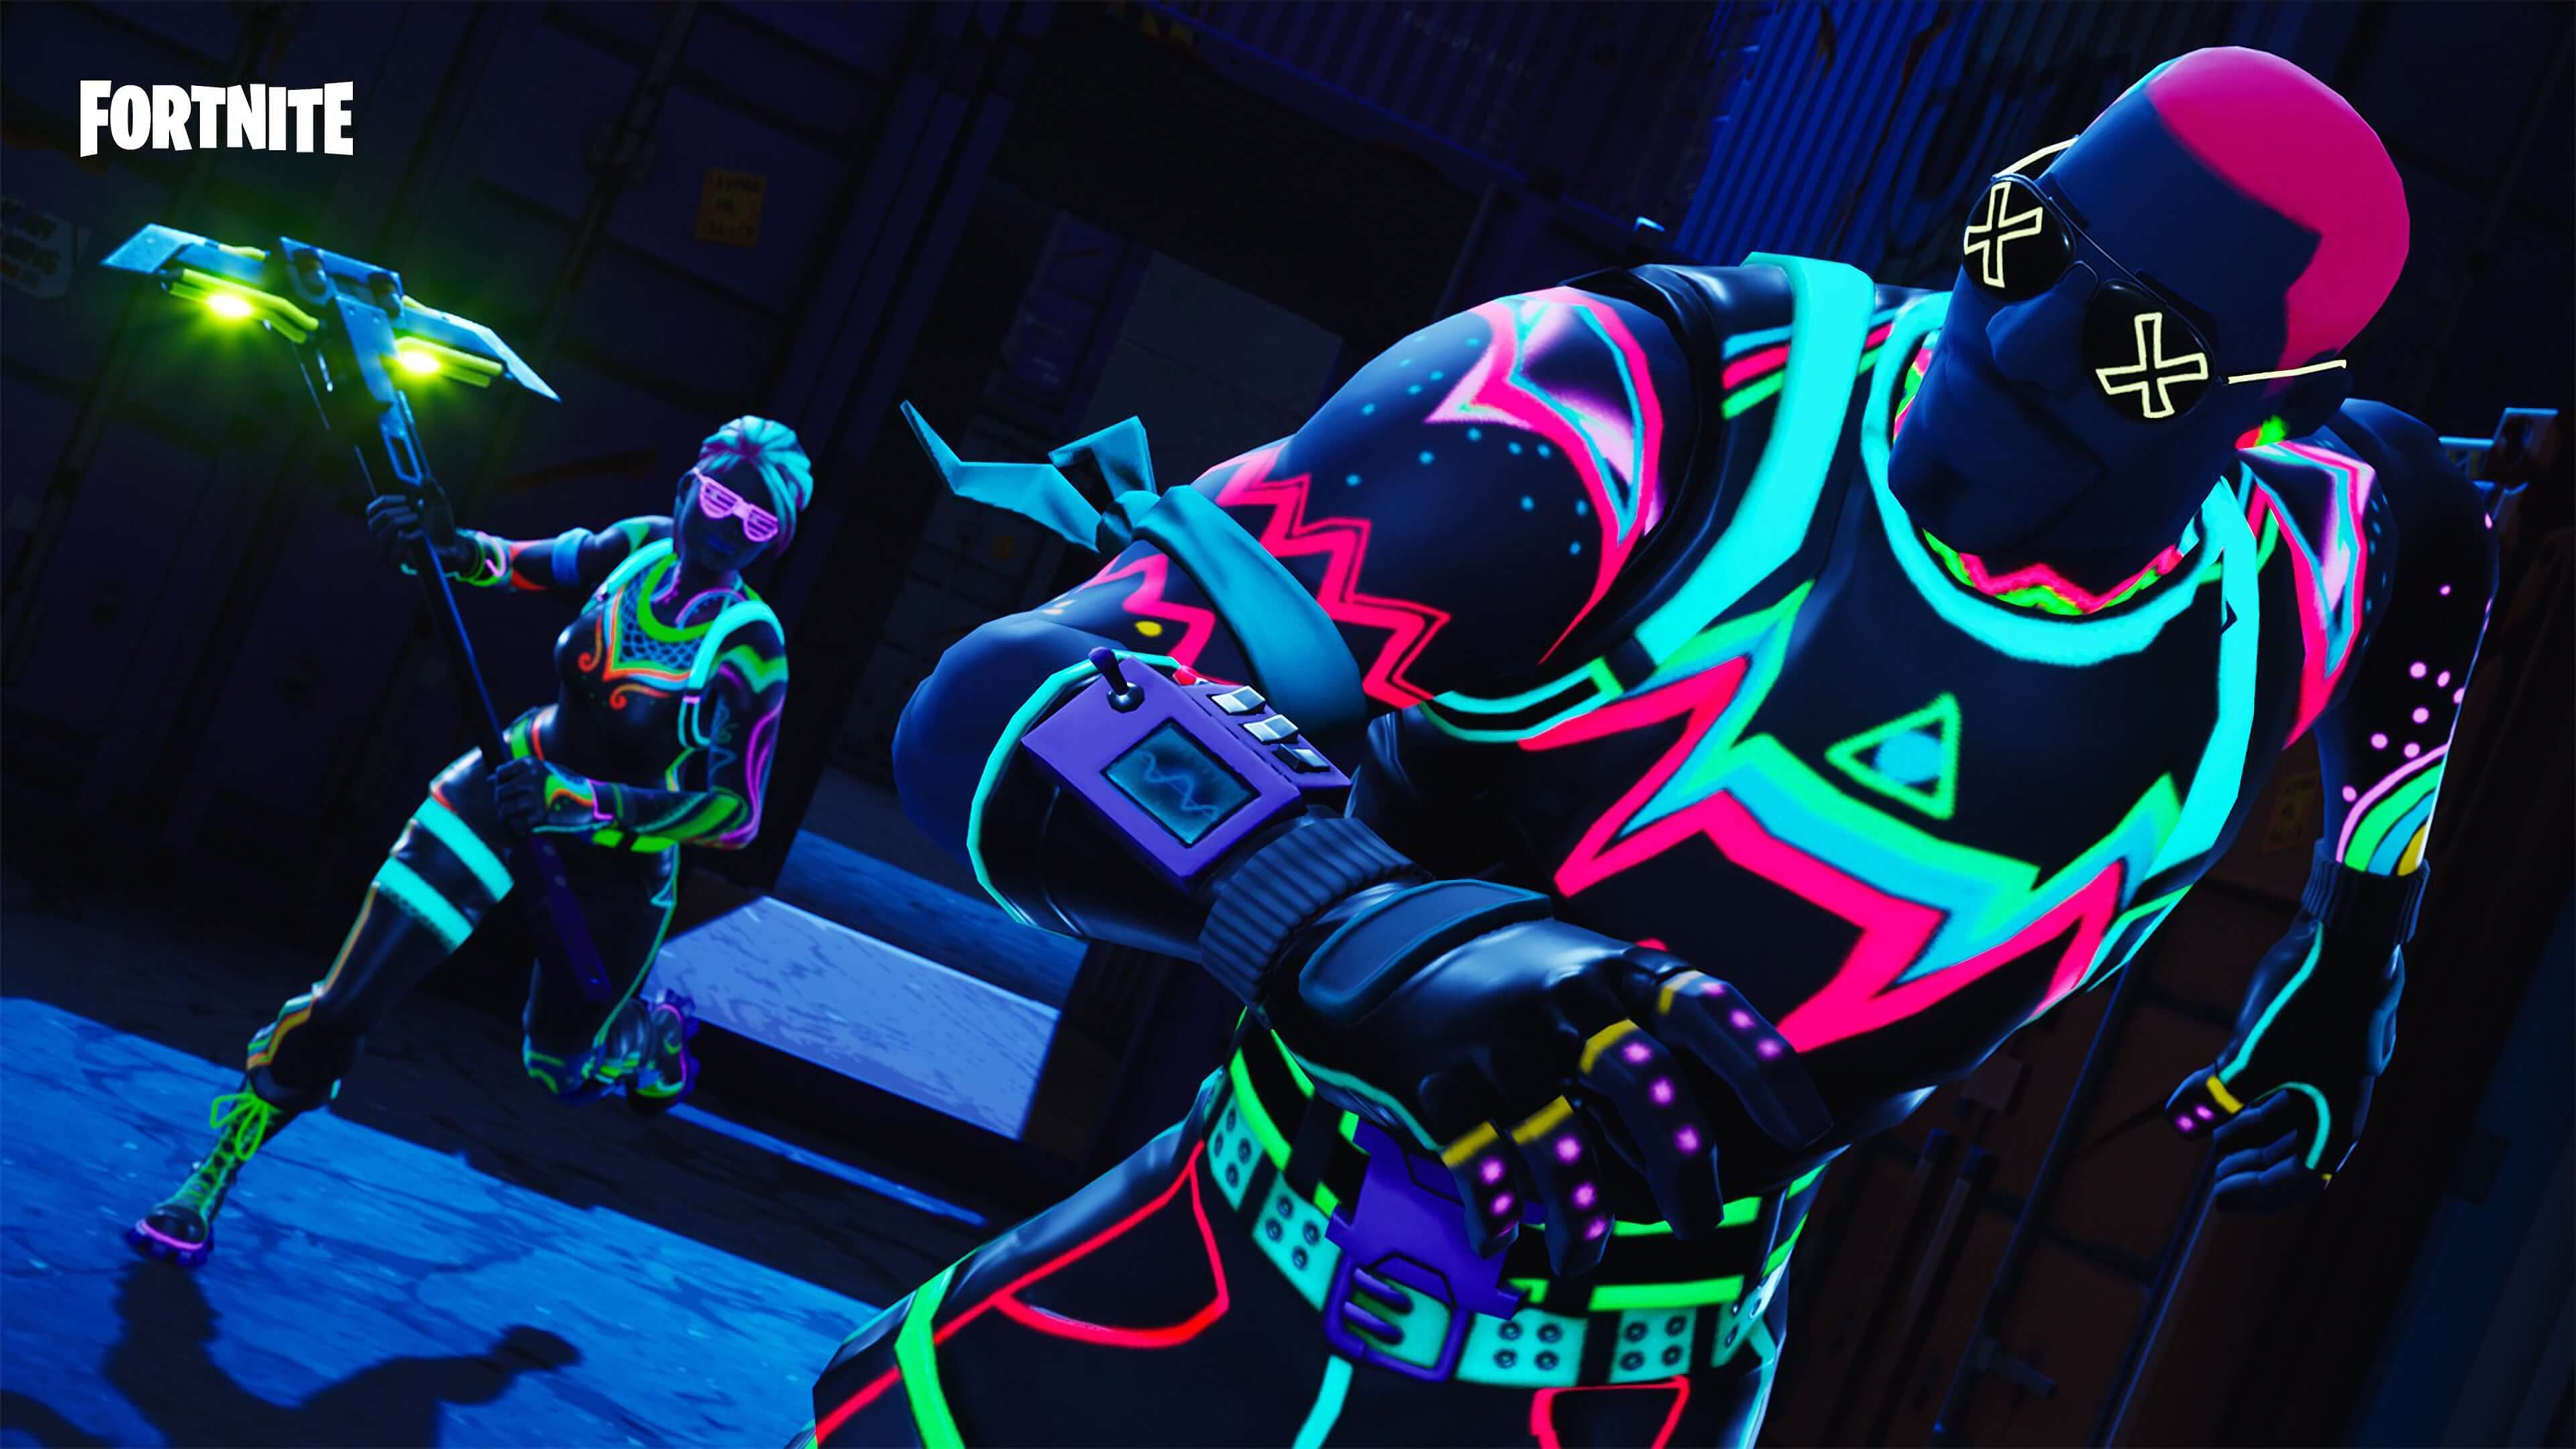 fortnite neon skins widescreen wallpaper 64051